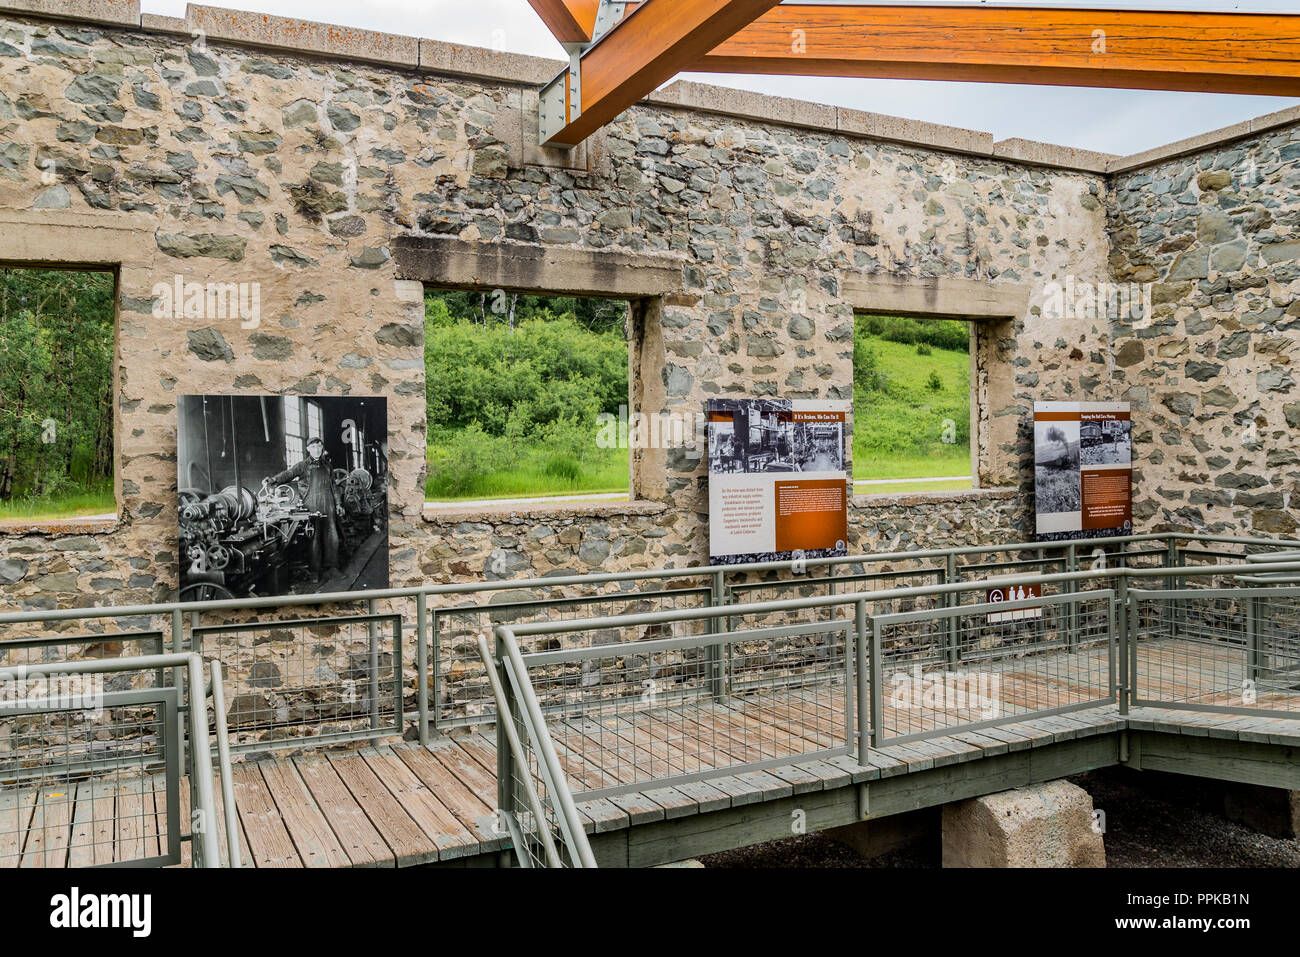 Leitch Colliery exhibit, Crowsnest Pass, Alberta, Canada - Stock Image